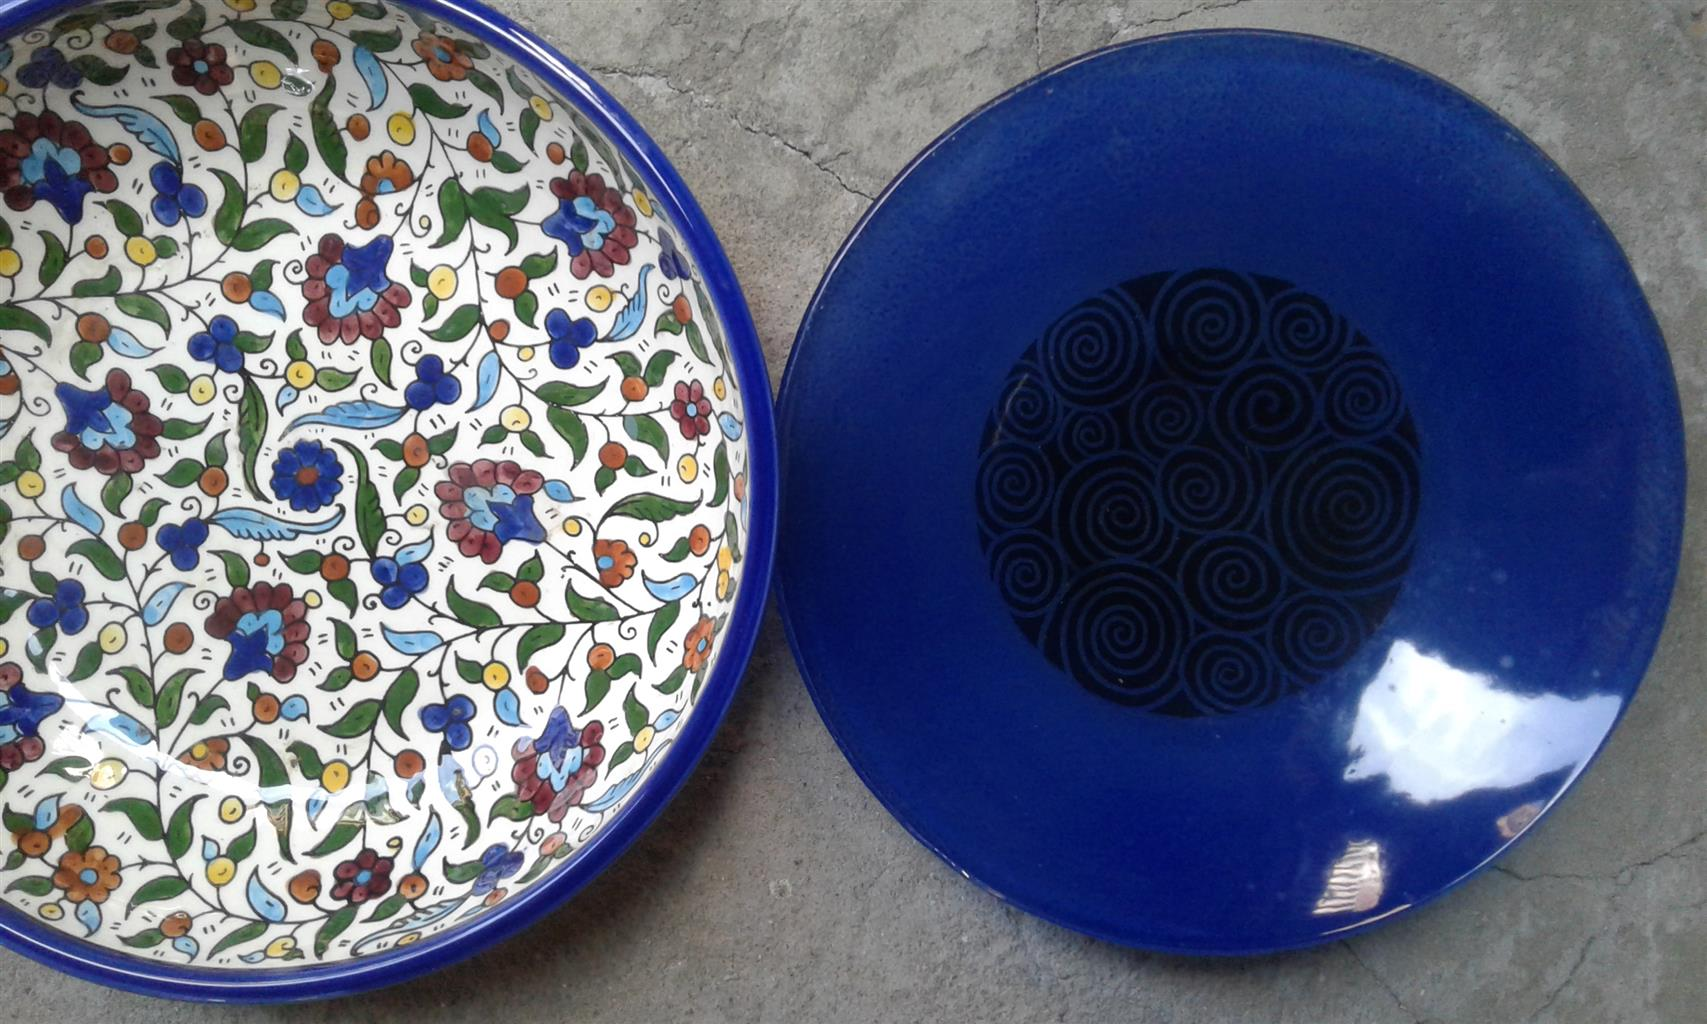 Good quality good condition Ceramics and Home decor Items at bargain prices